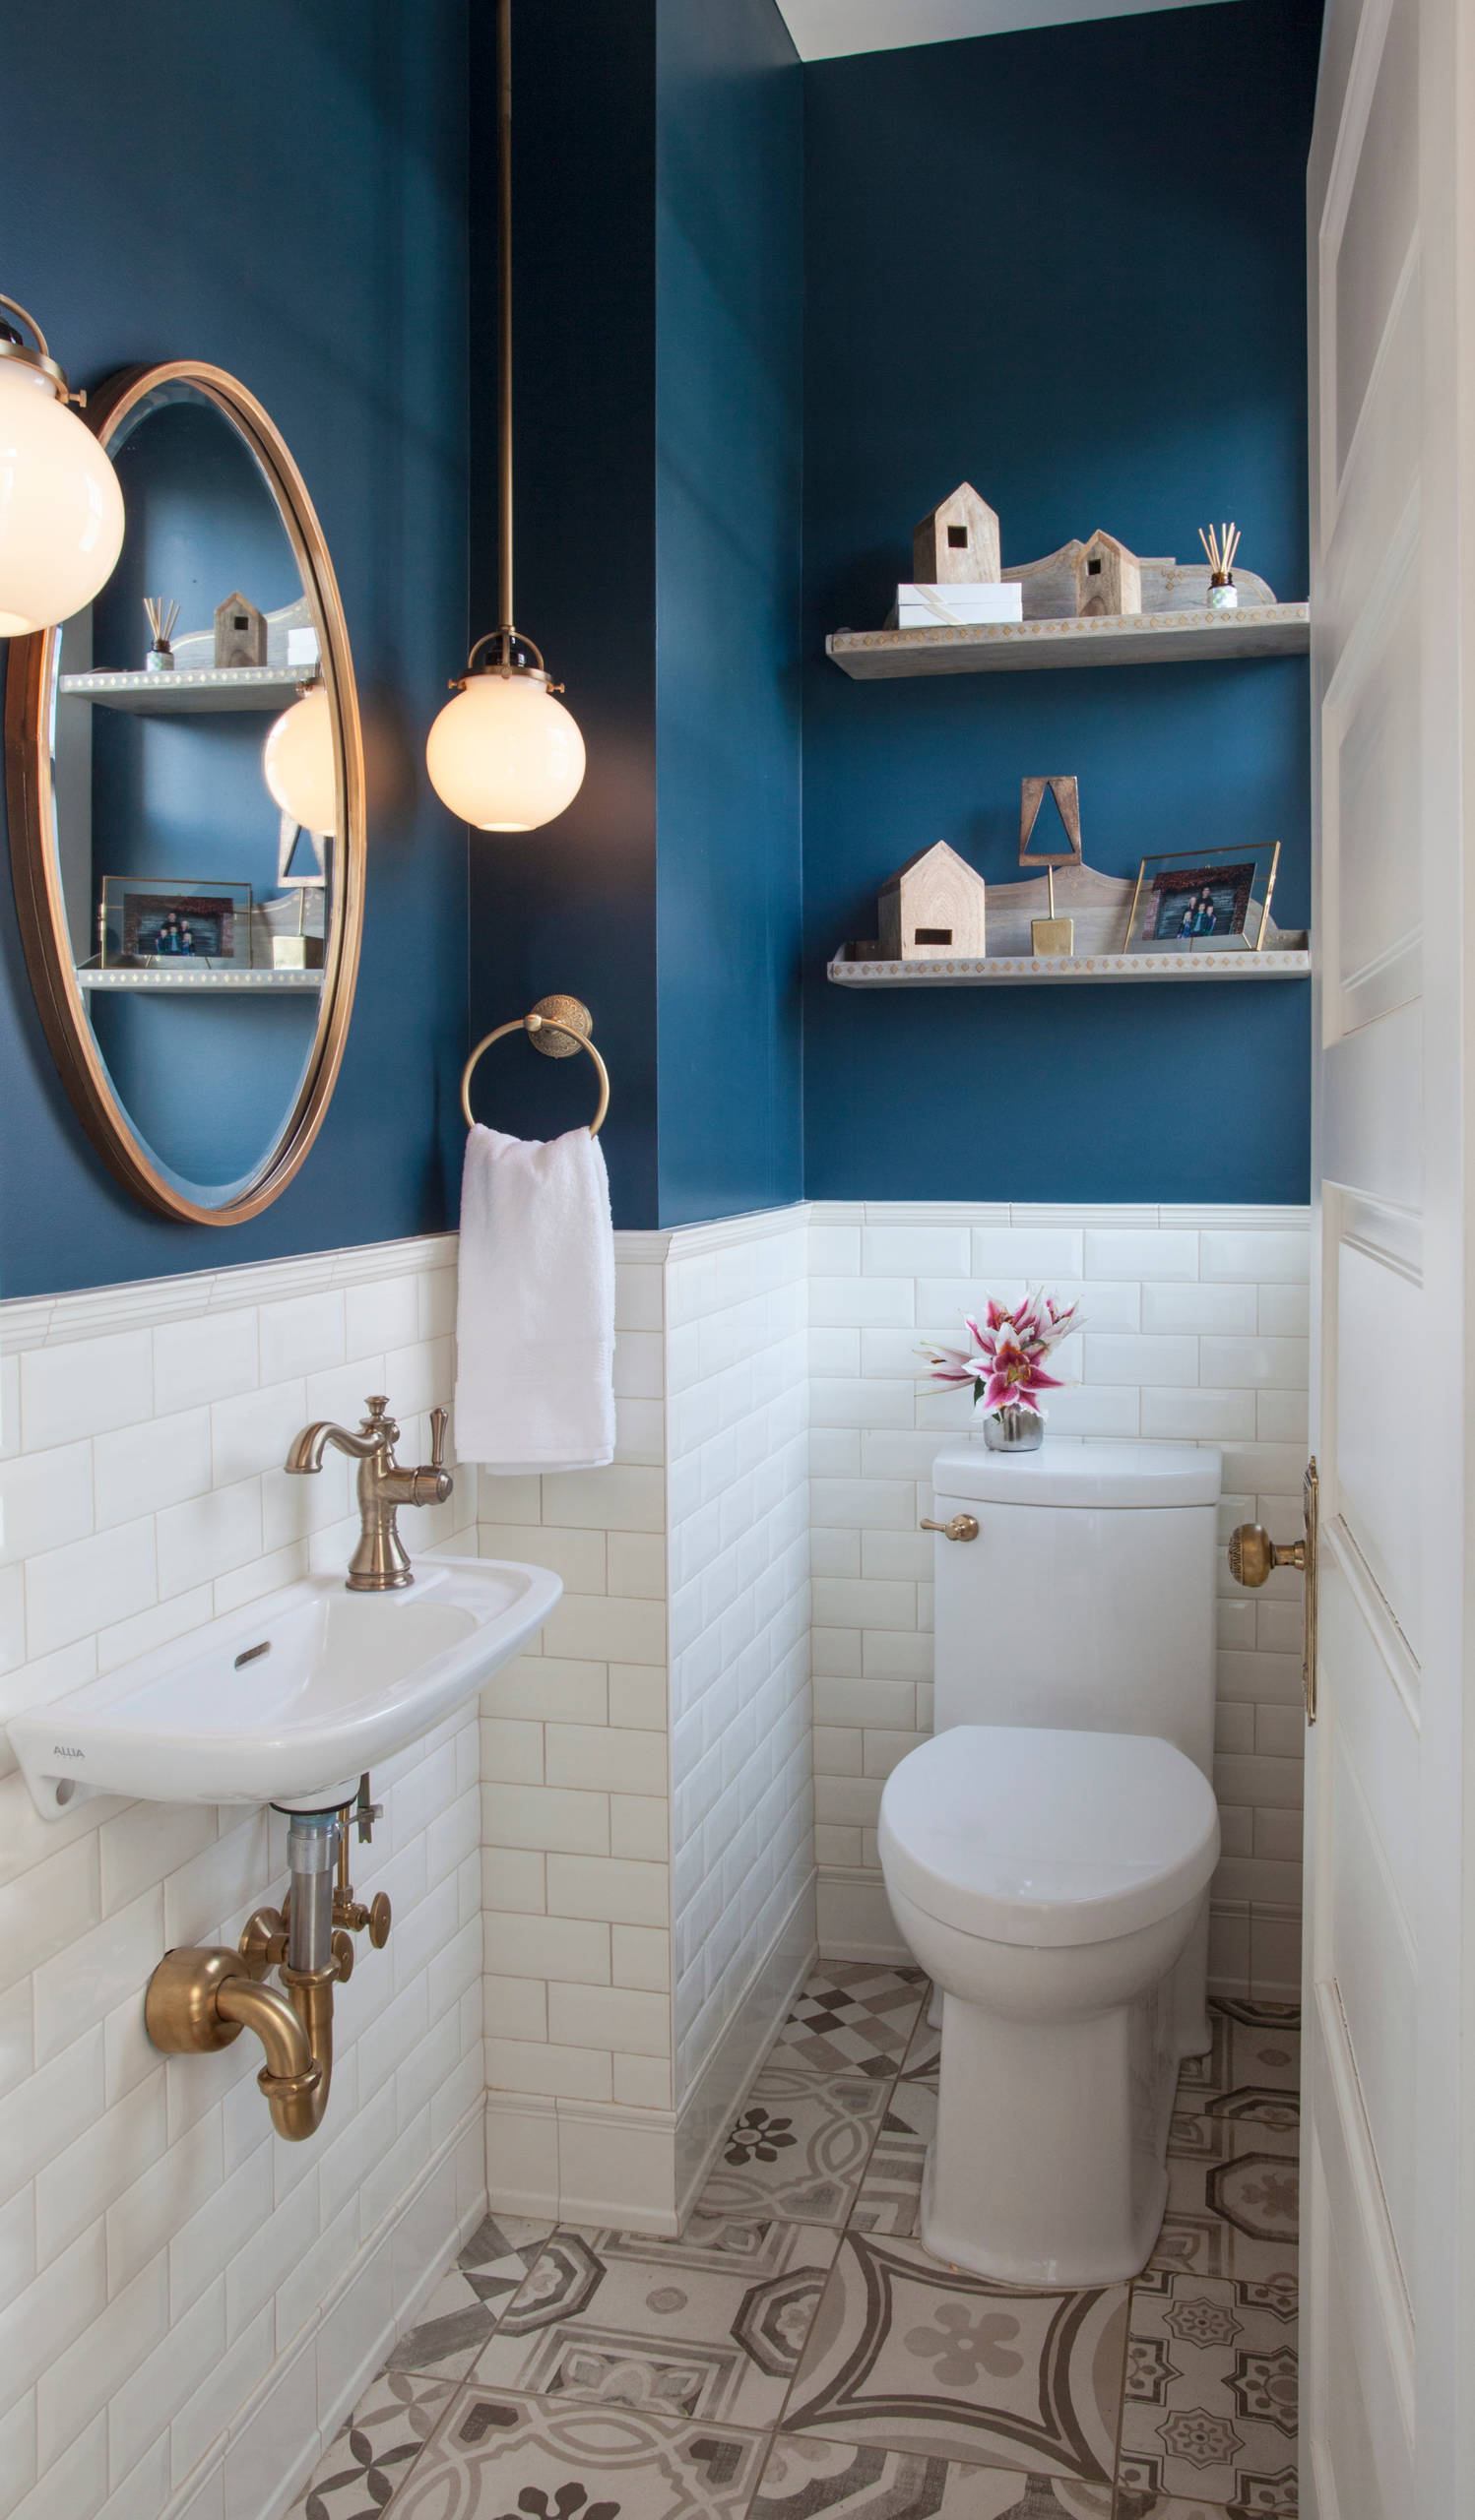 75 Beautiful Ceramic Tile Powder Room Pictures Ideas February 2021 Houzz